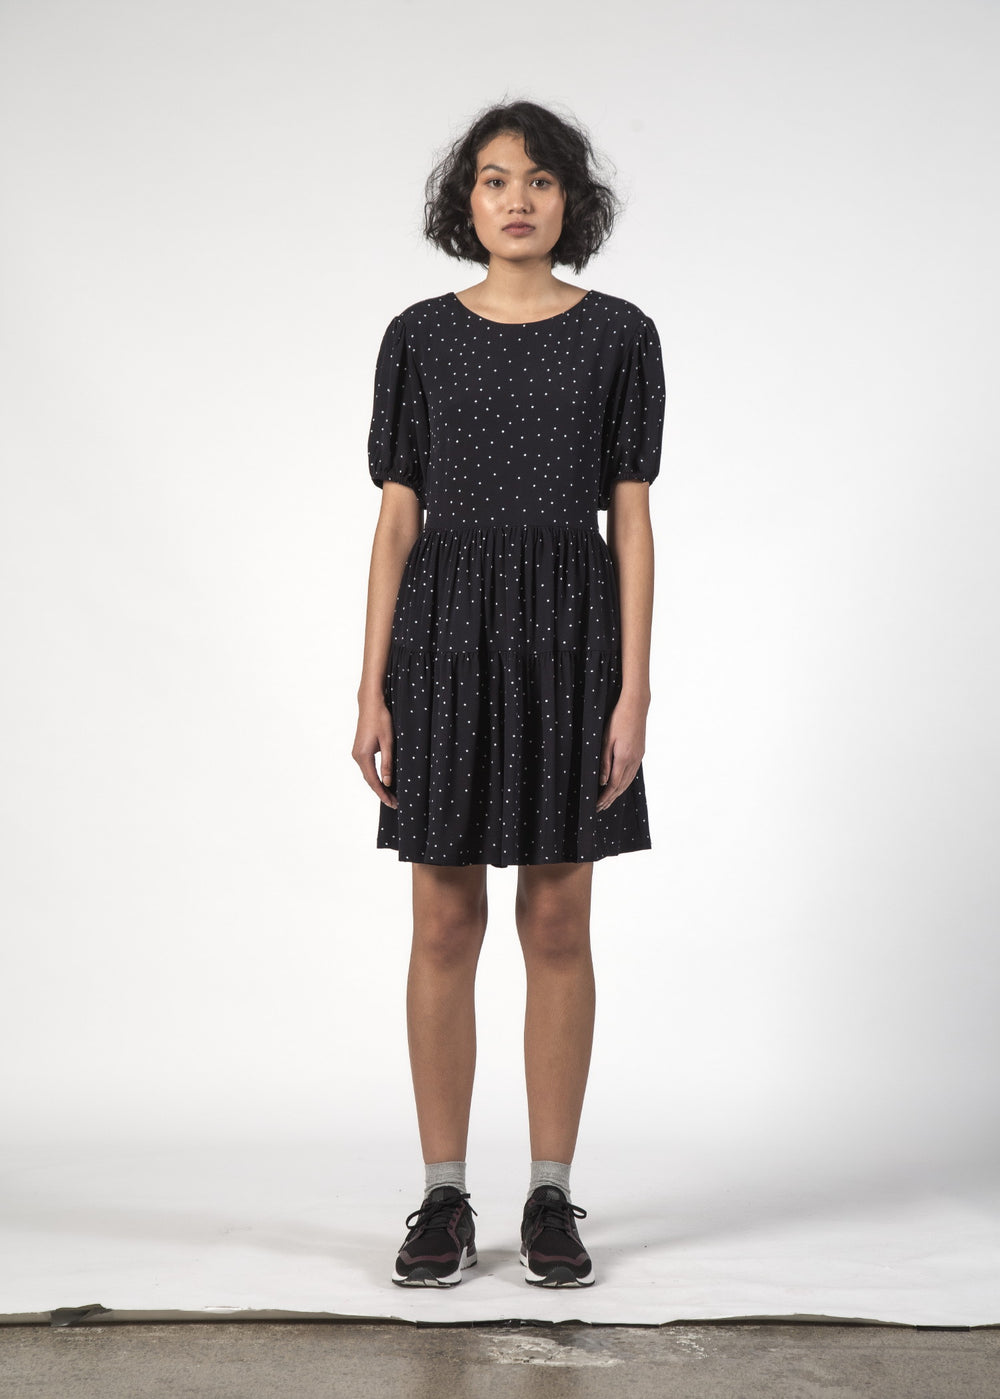 SALE - POPPY DRESS - Black Dot